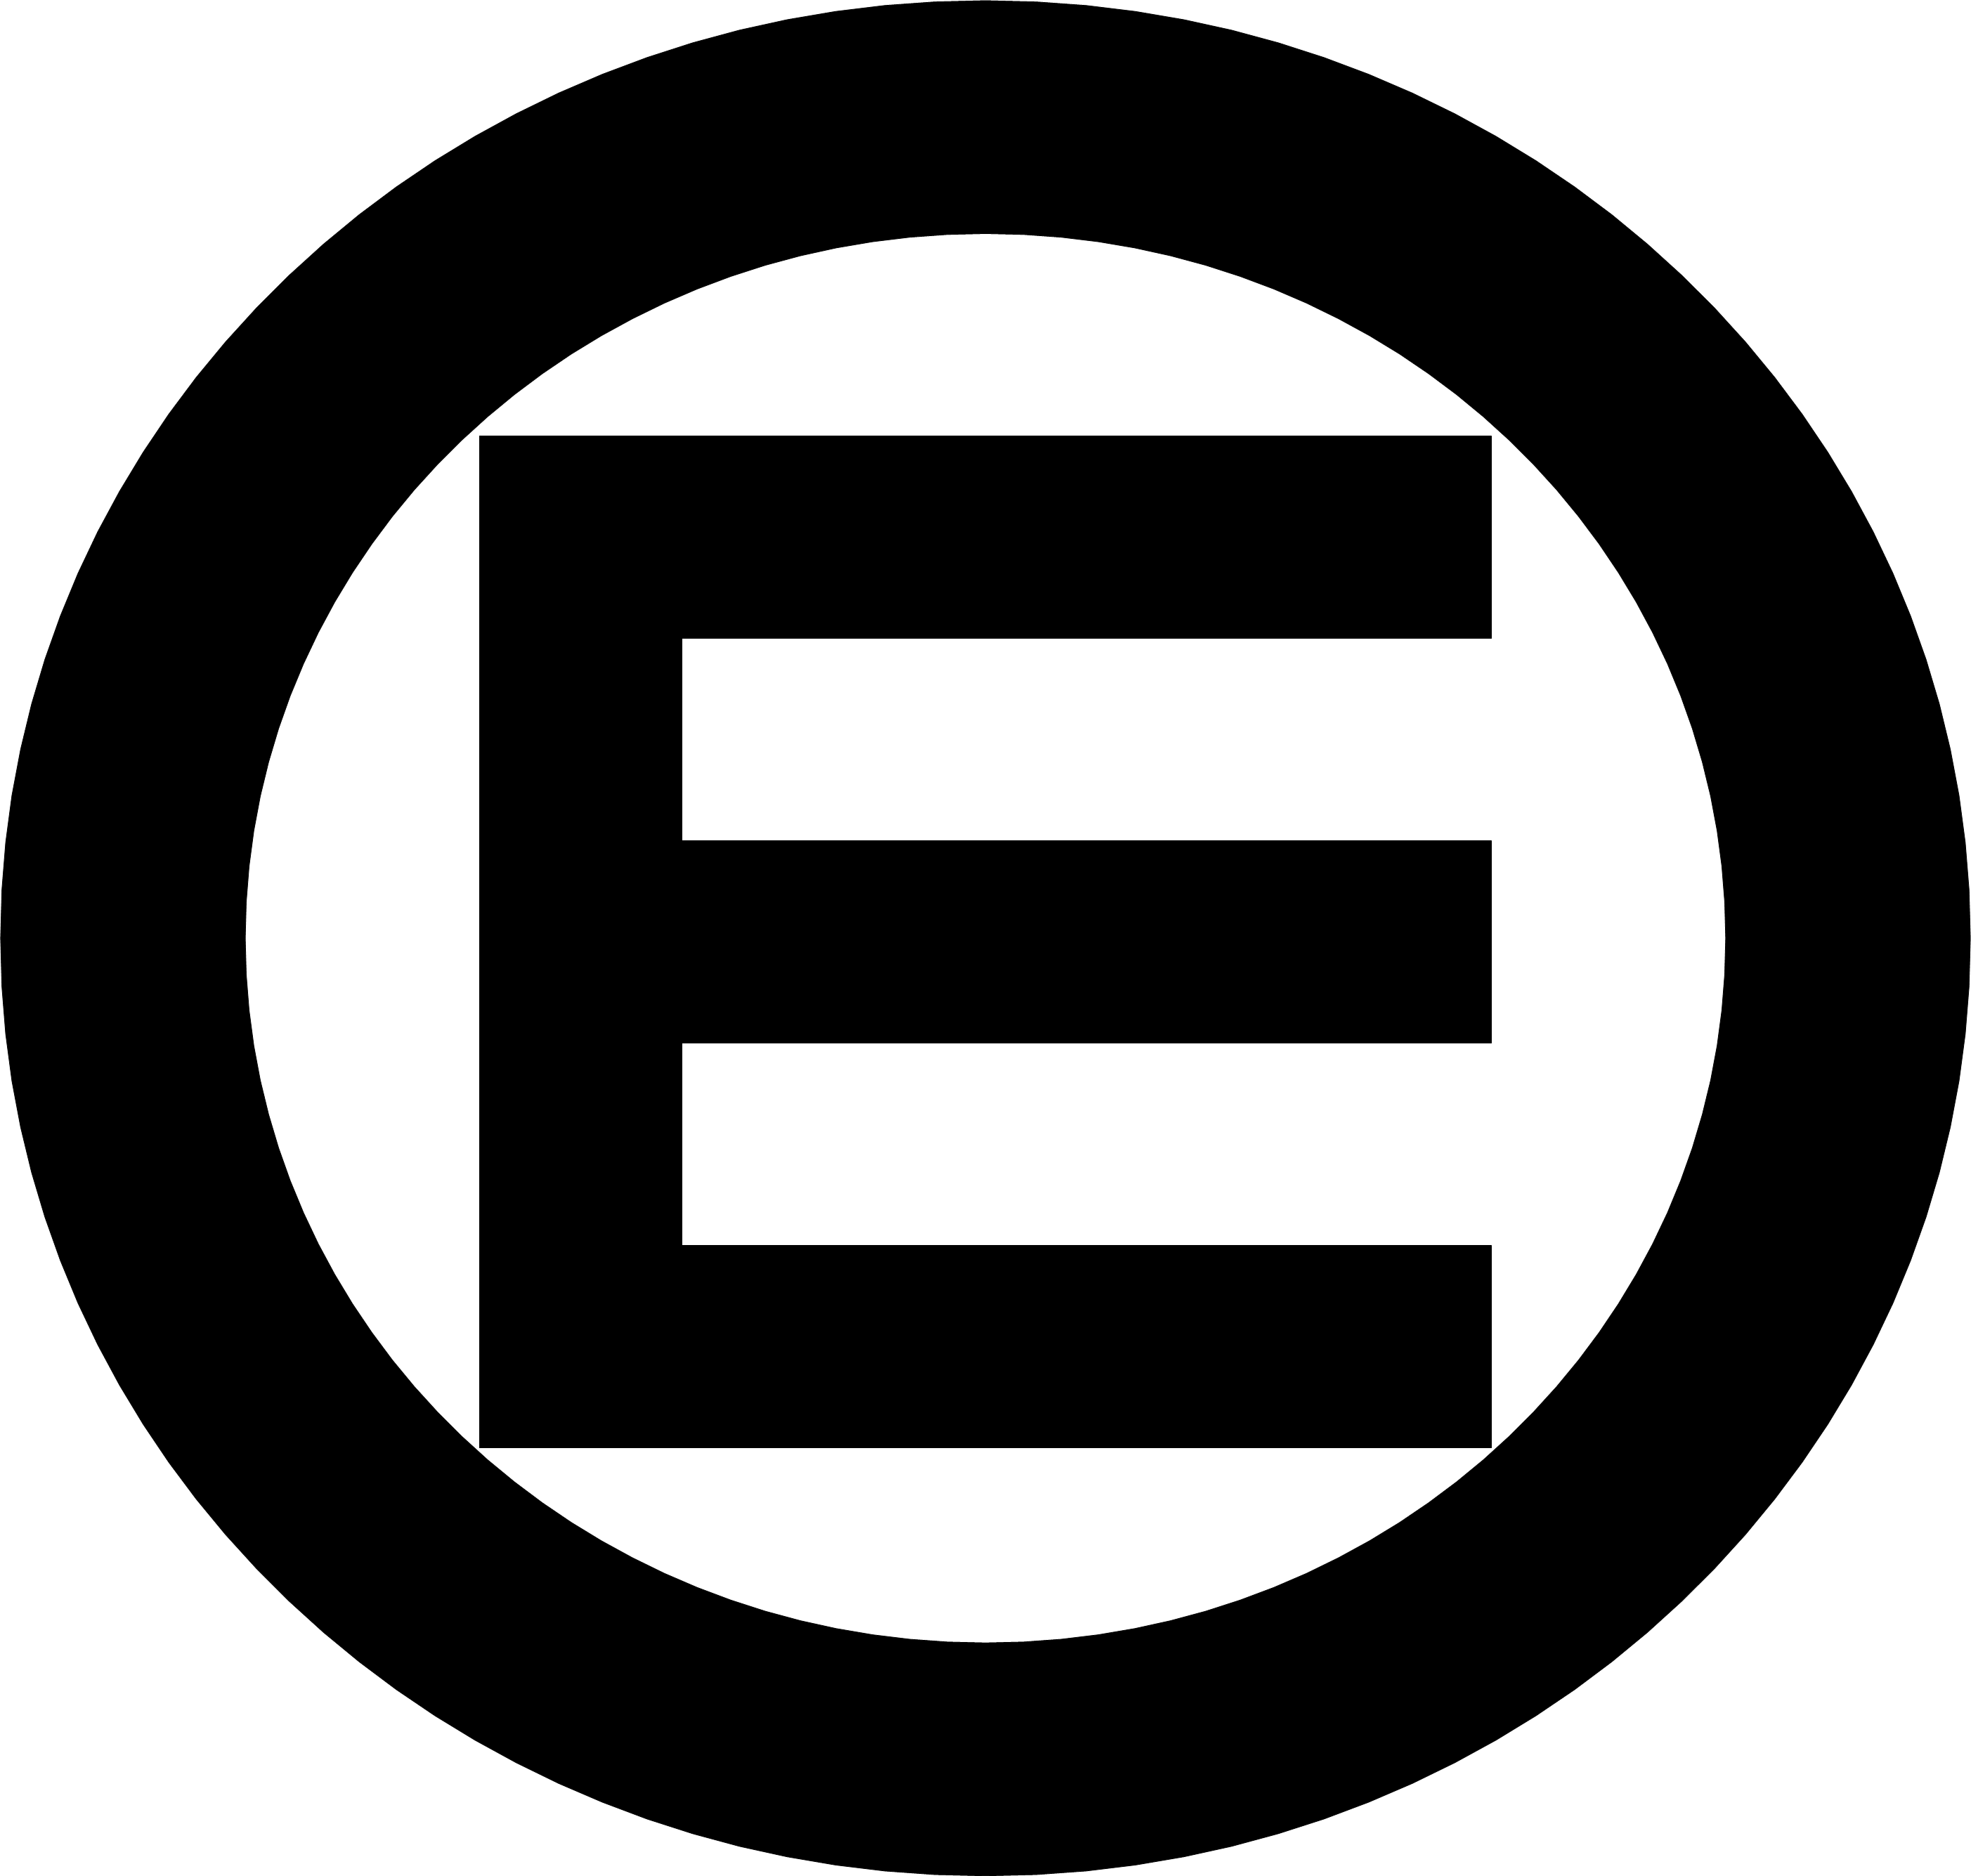 e logo png - photo #35